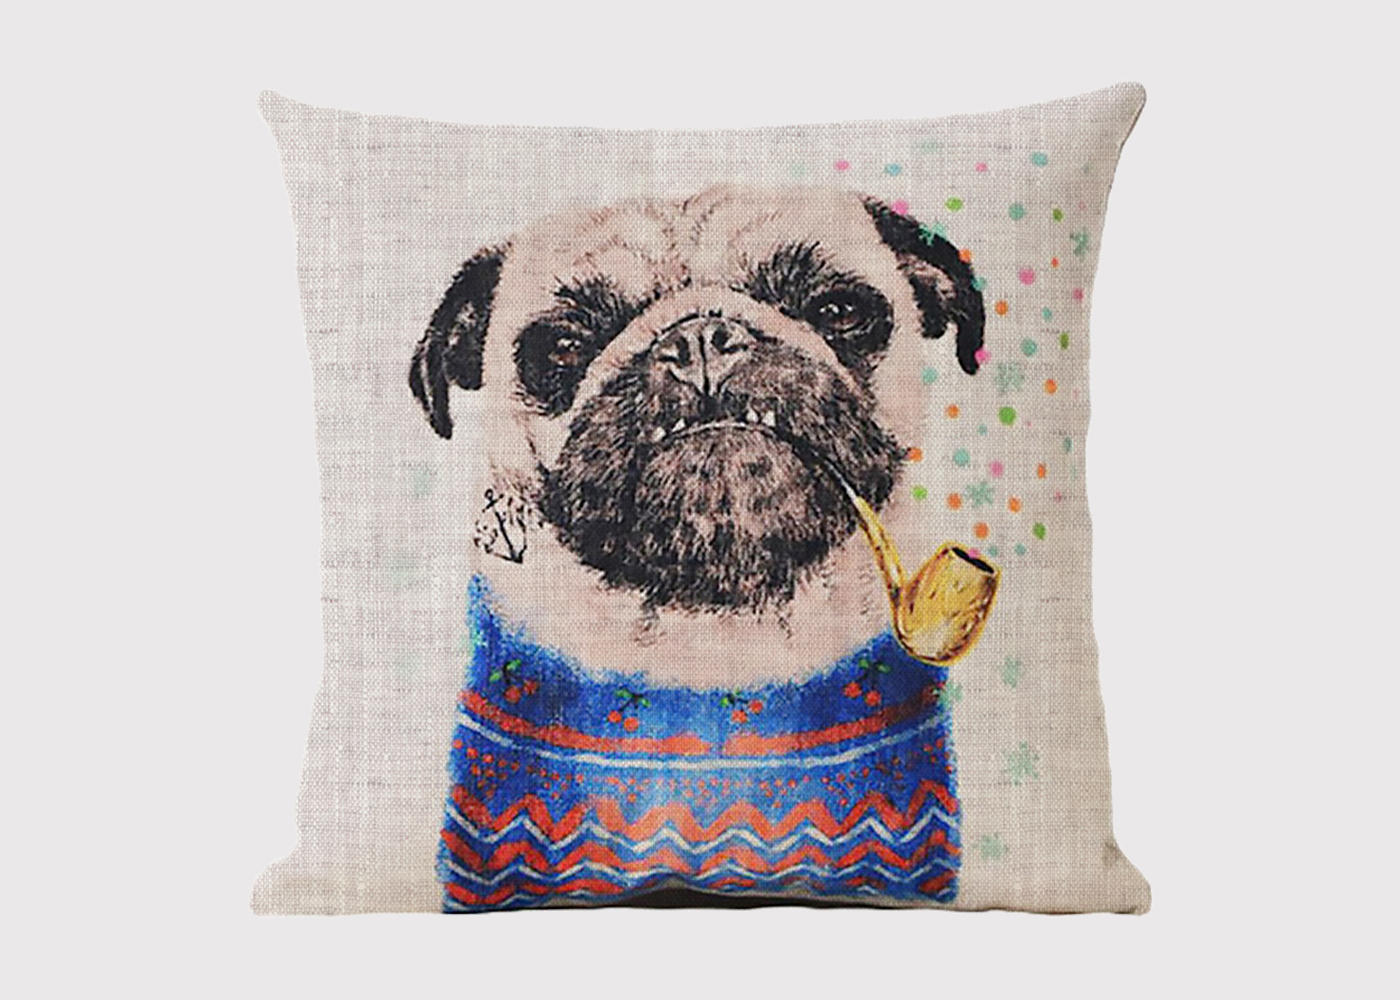 Smoking Pug Cushion